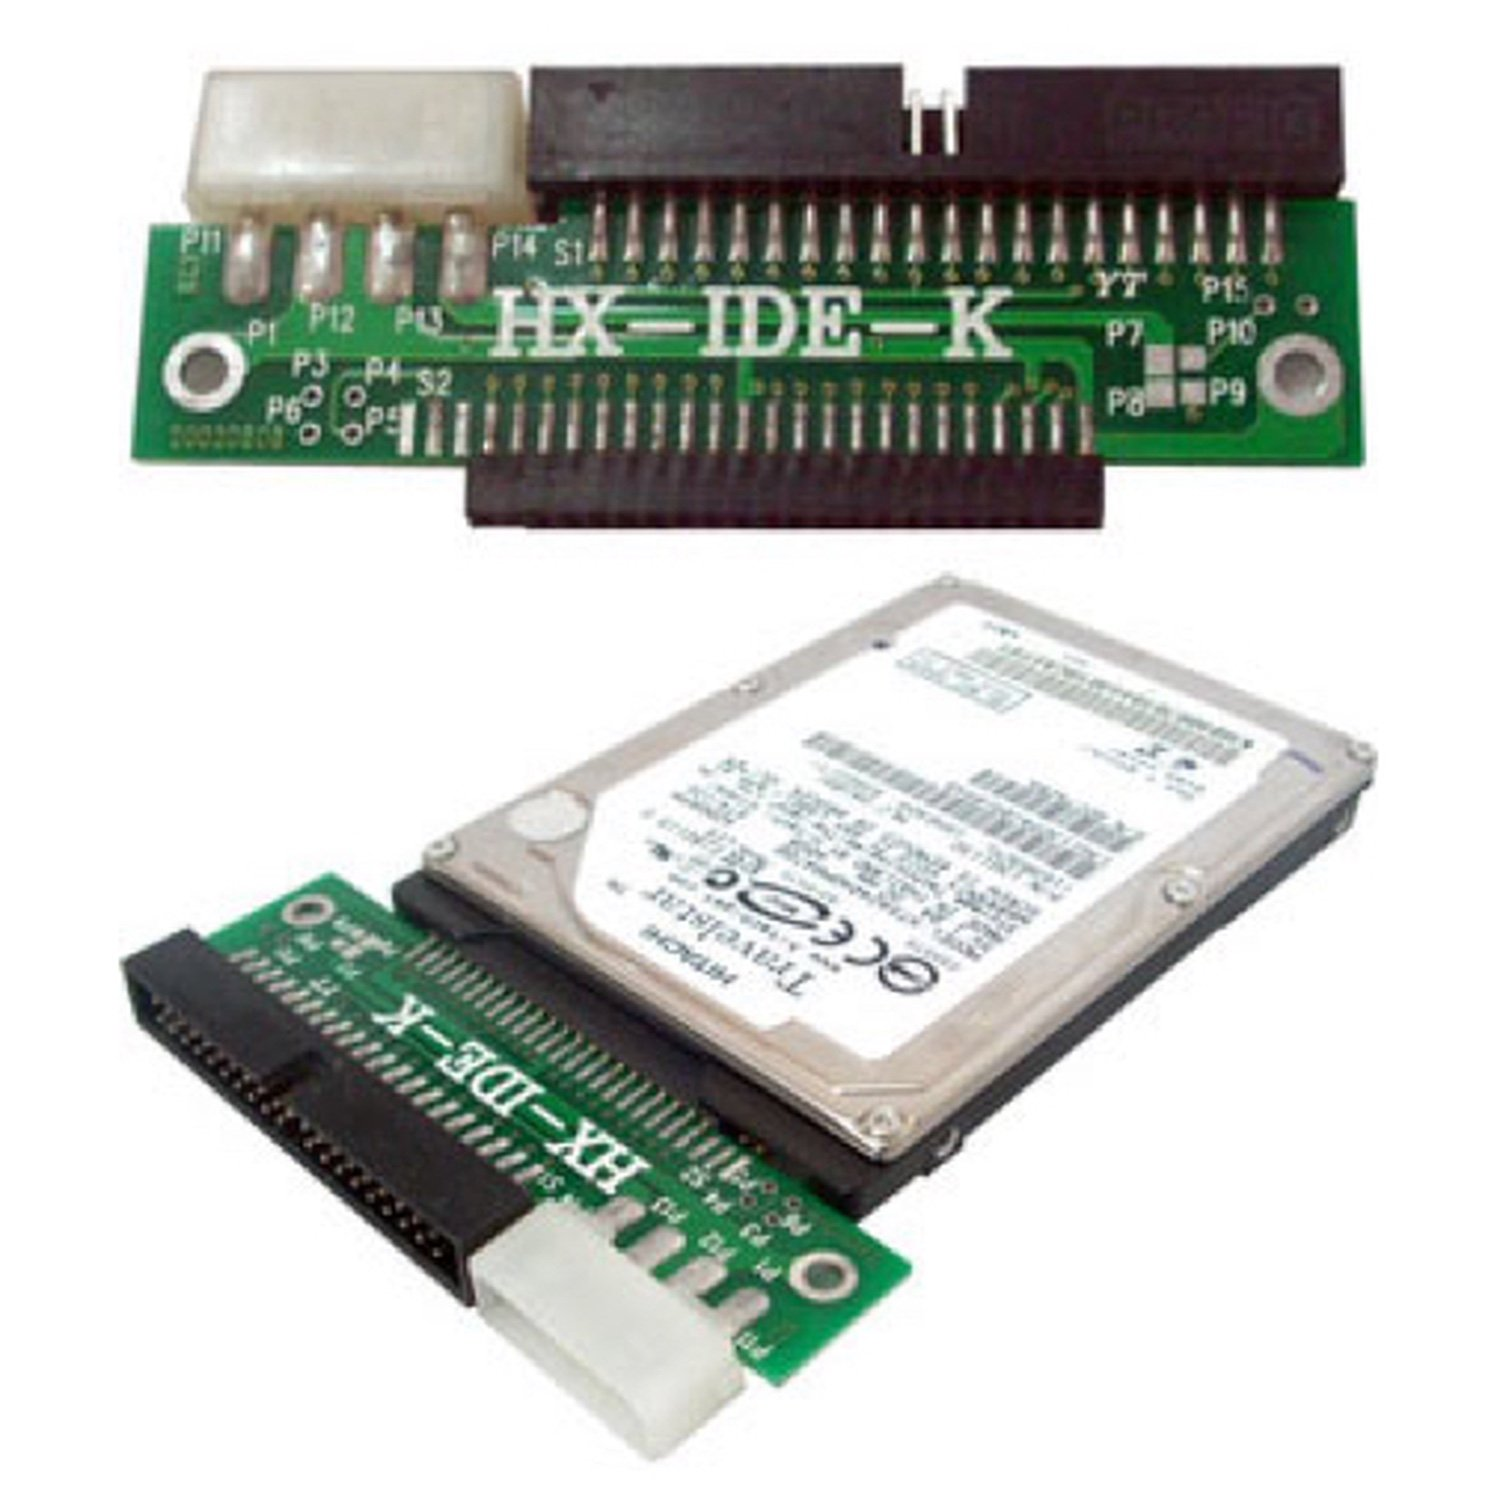 IDE Adapter Transforms Your Hard Disk 2.5 To 3.5